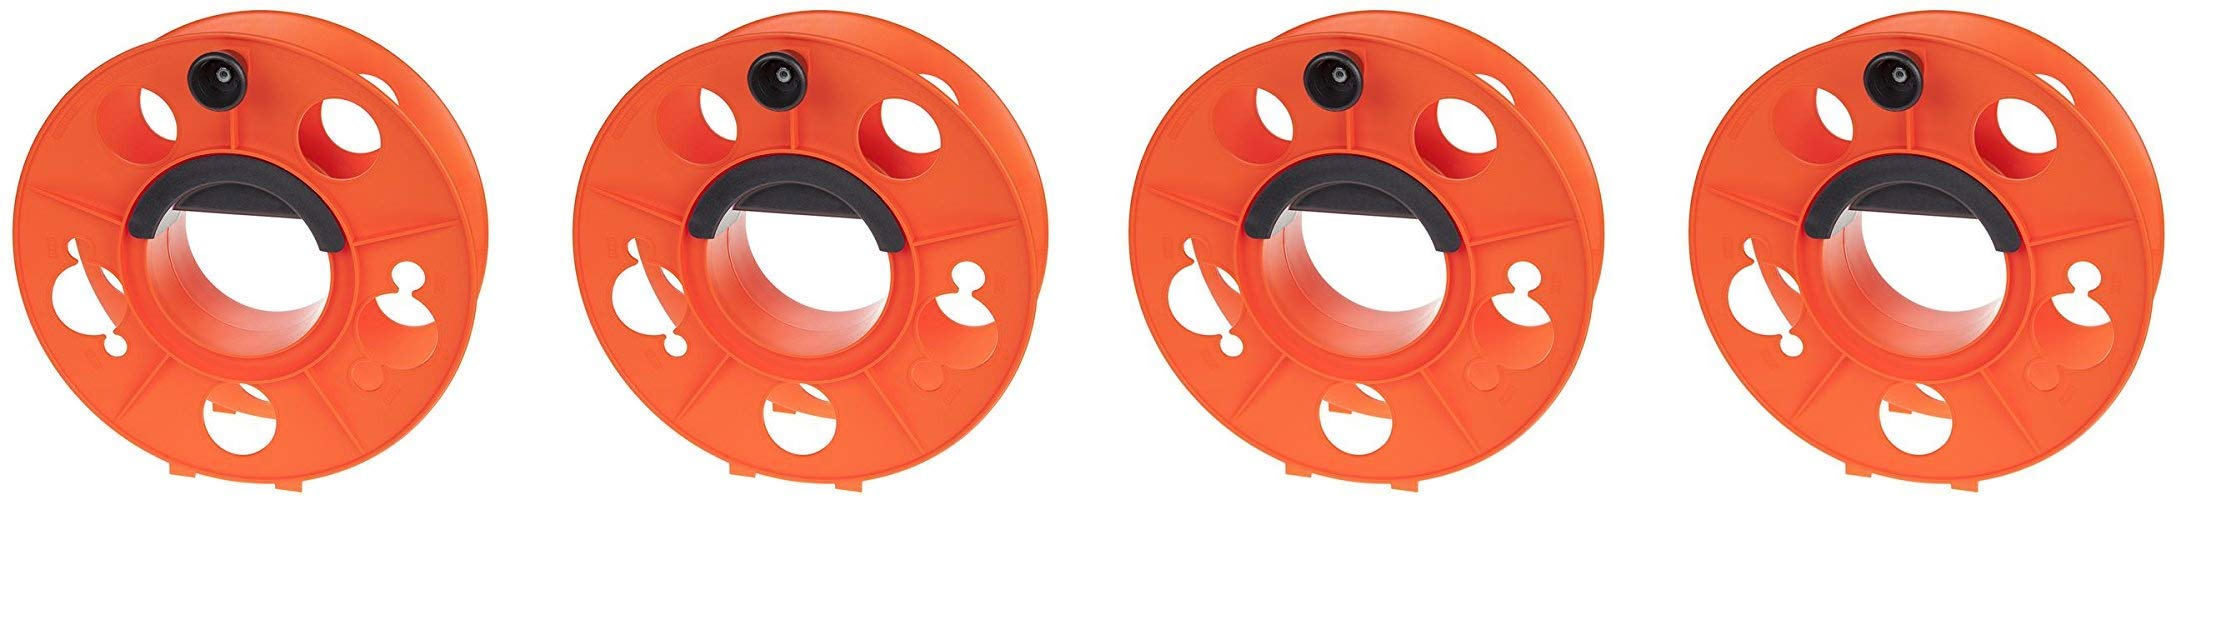 Bayco KW-130 Cord Storage Reel with Center Spin Handle, 150-Feet (4-Pack, Orange)